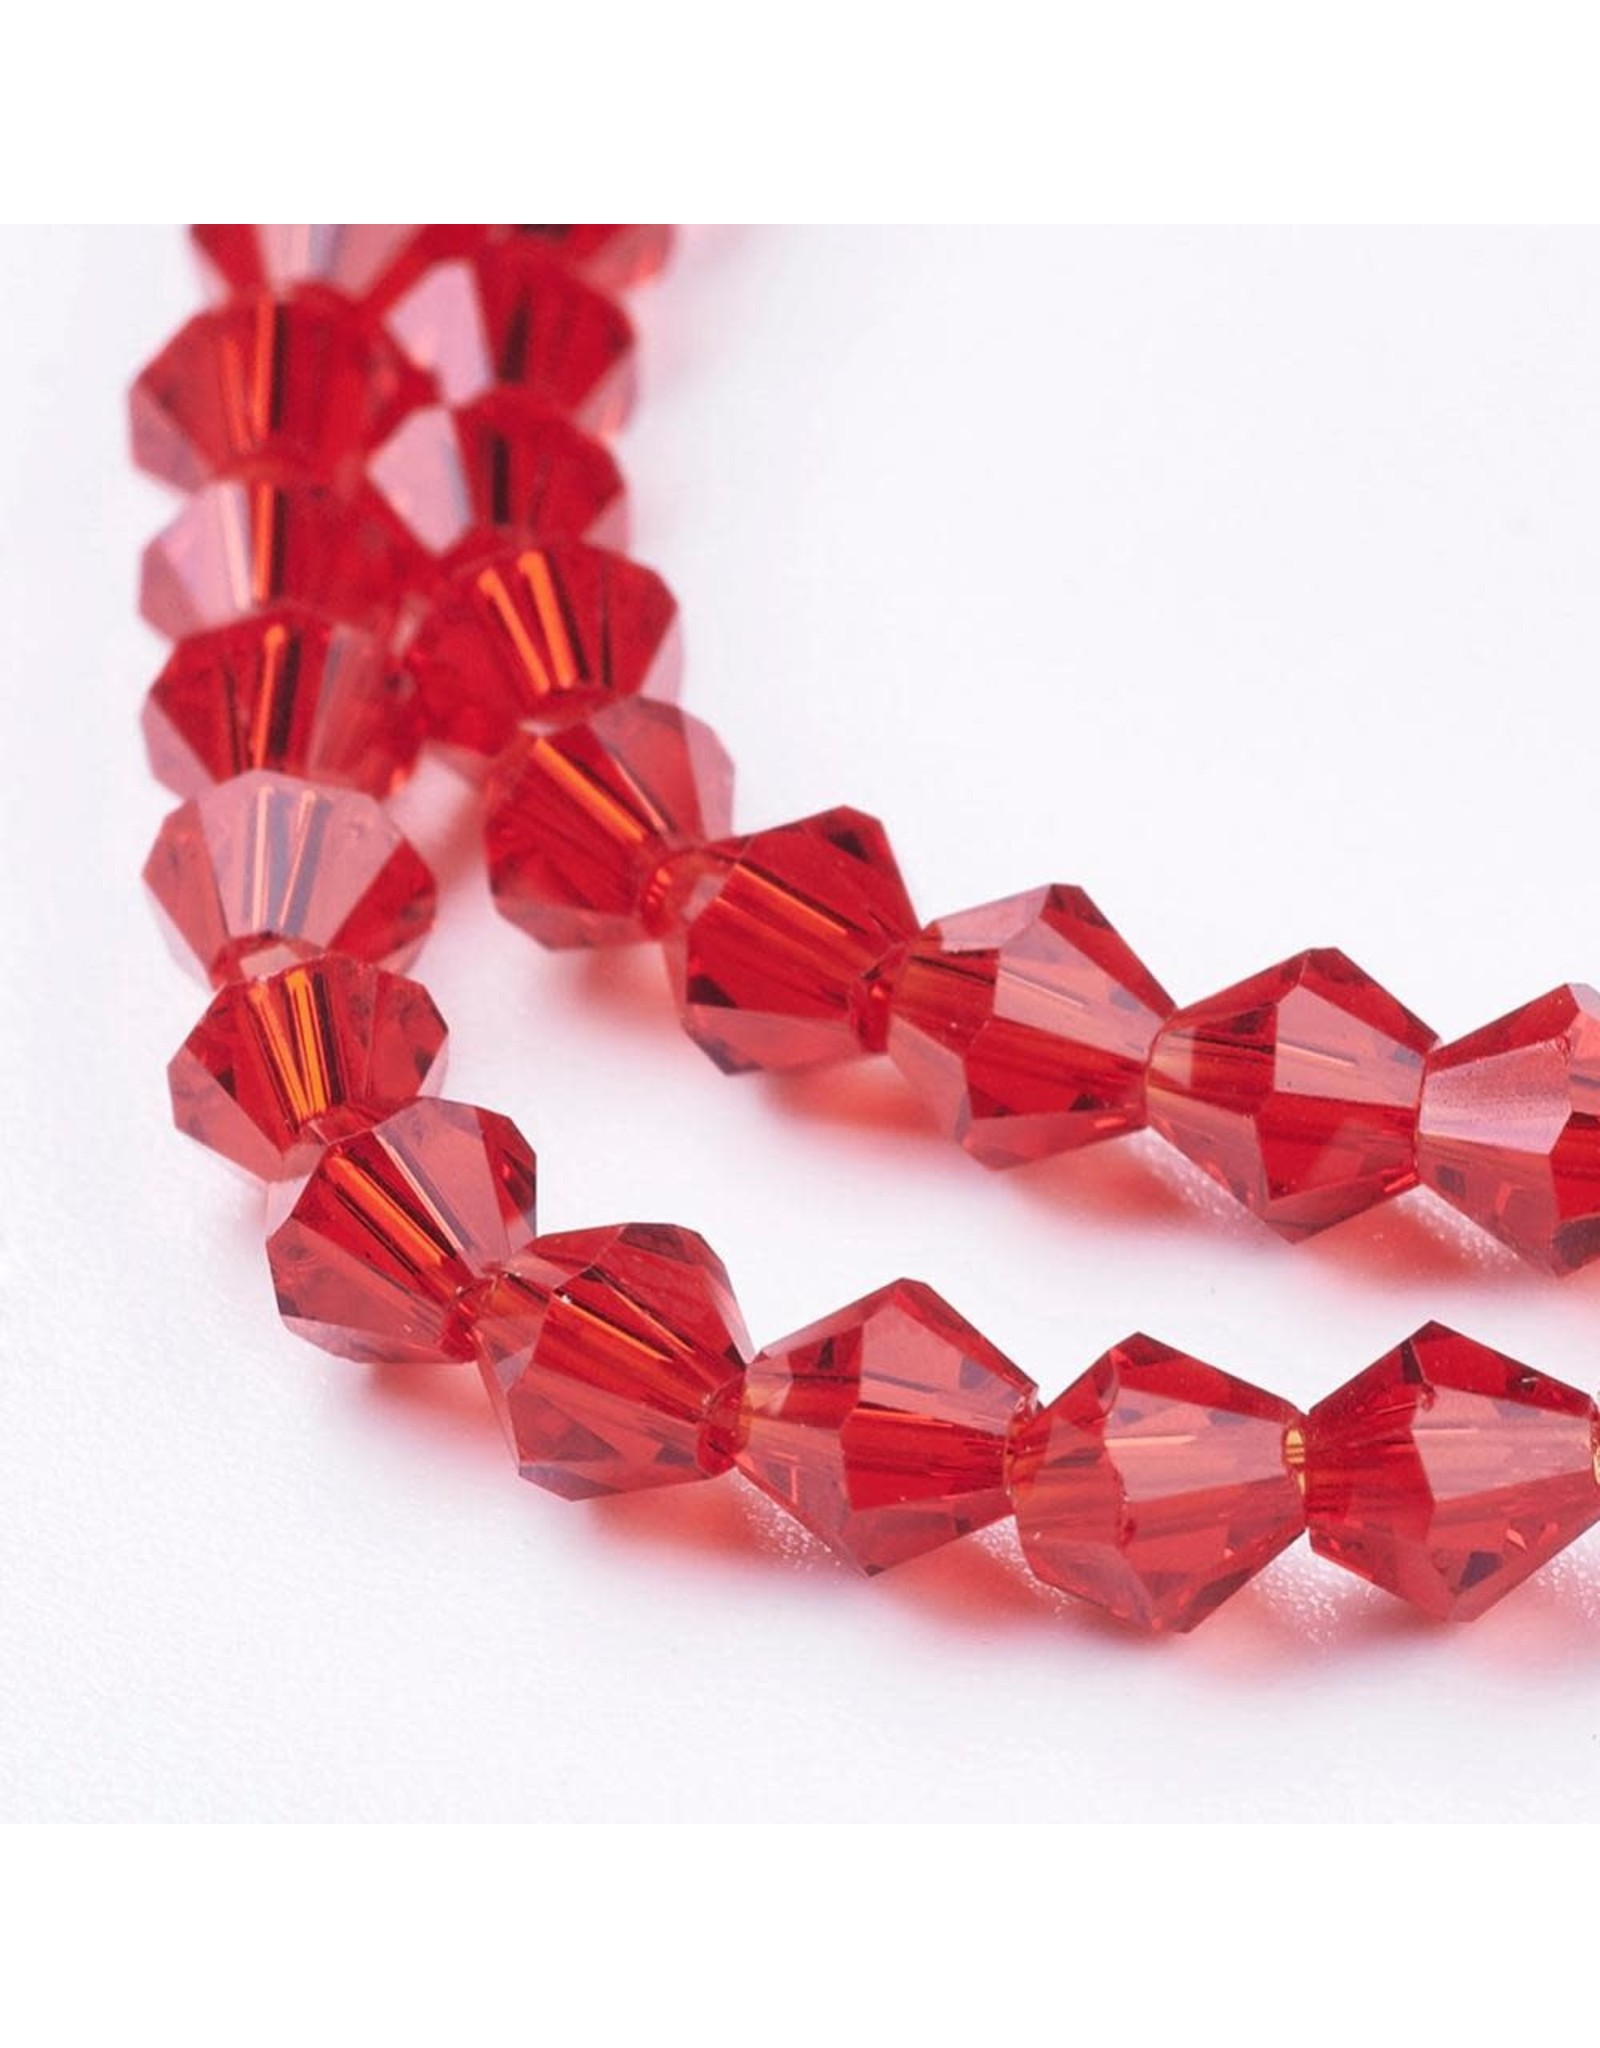 4mm Bicone  Red   x100